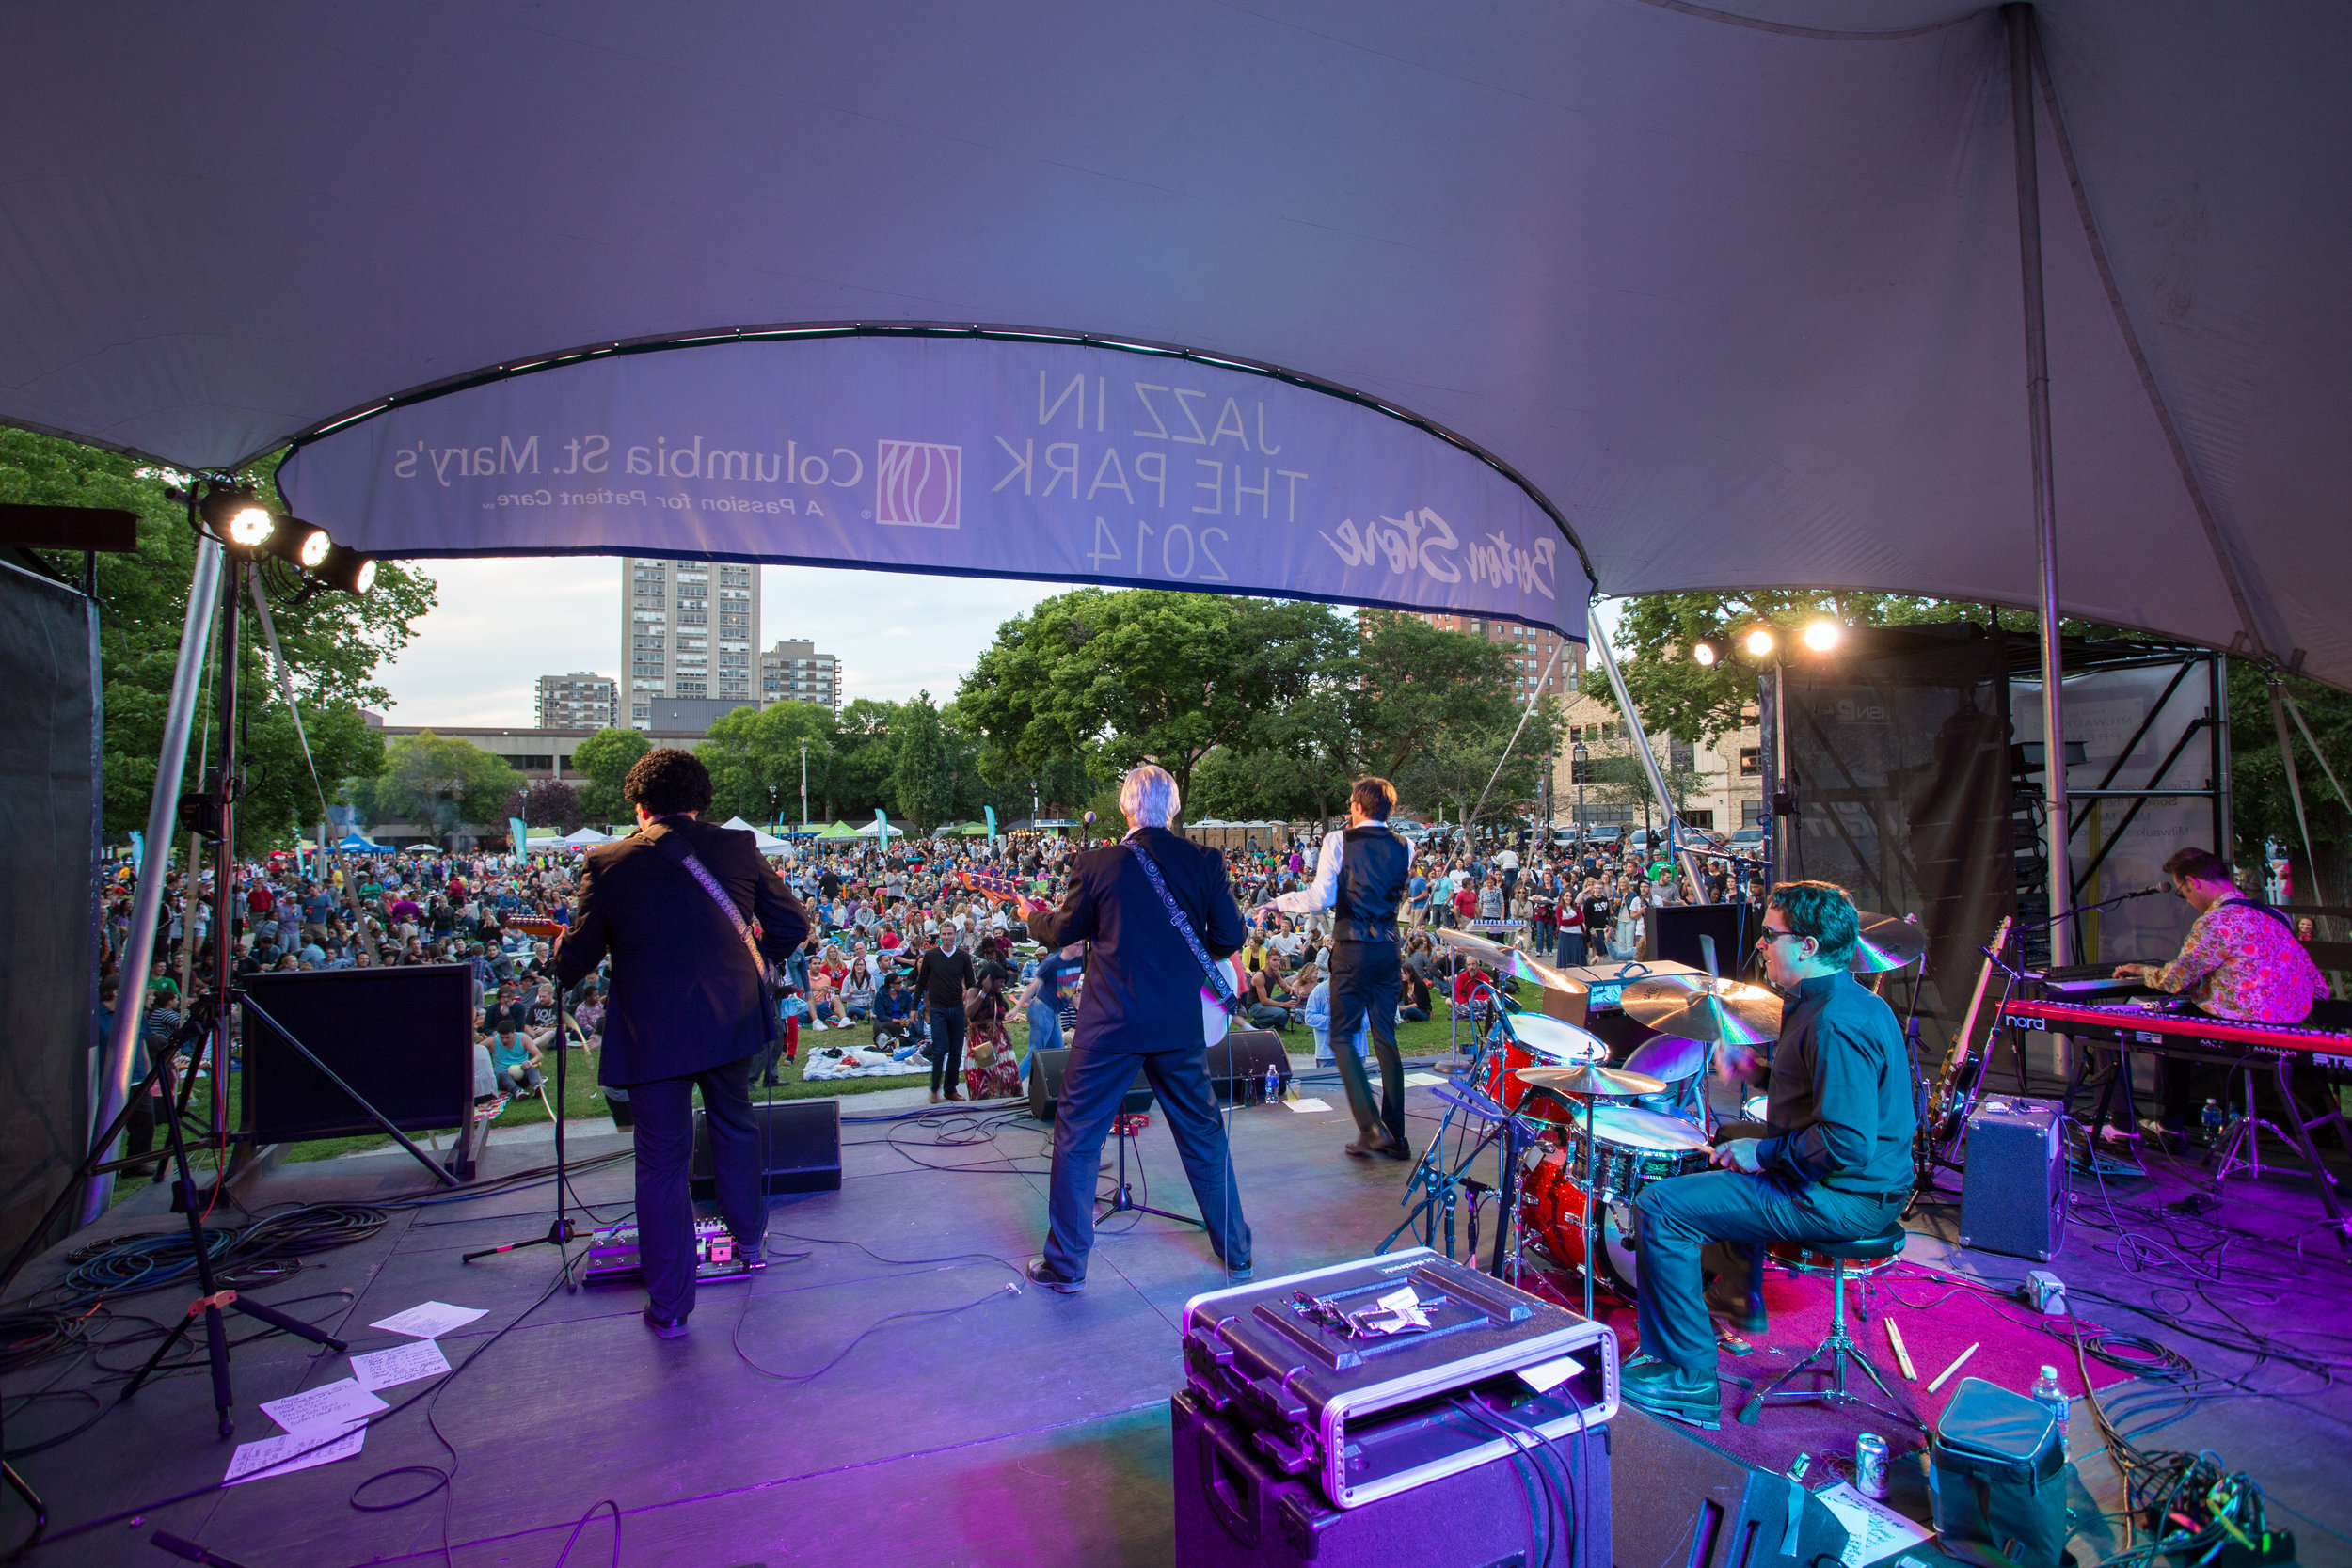 Jazz in the Park happens weekly throughout the summer in Cathedral Square